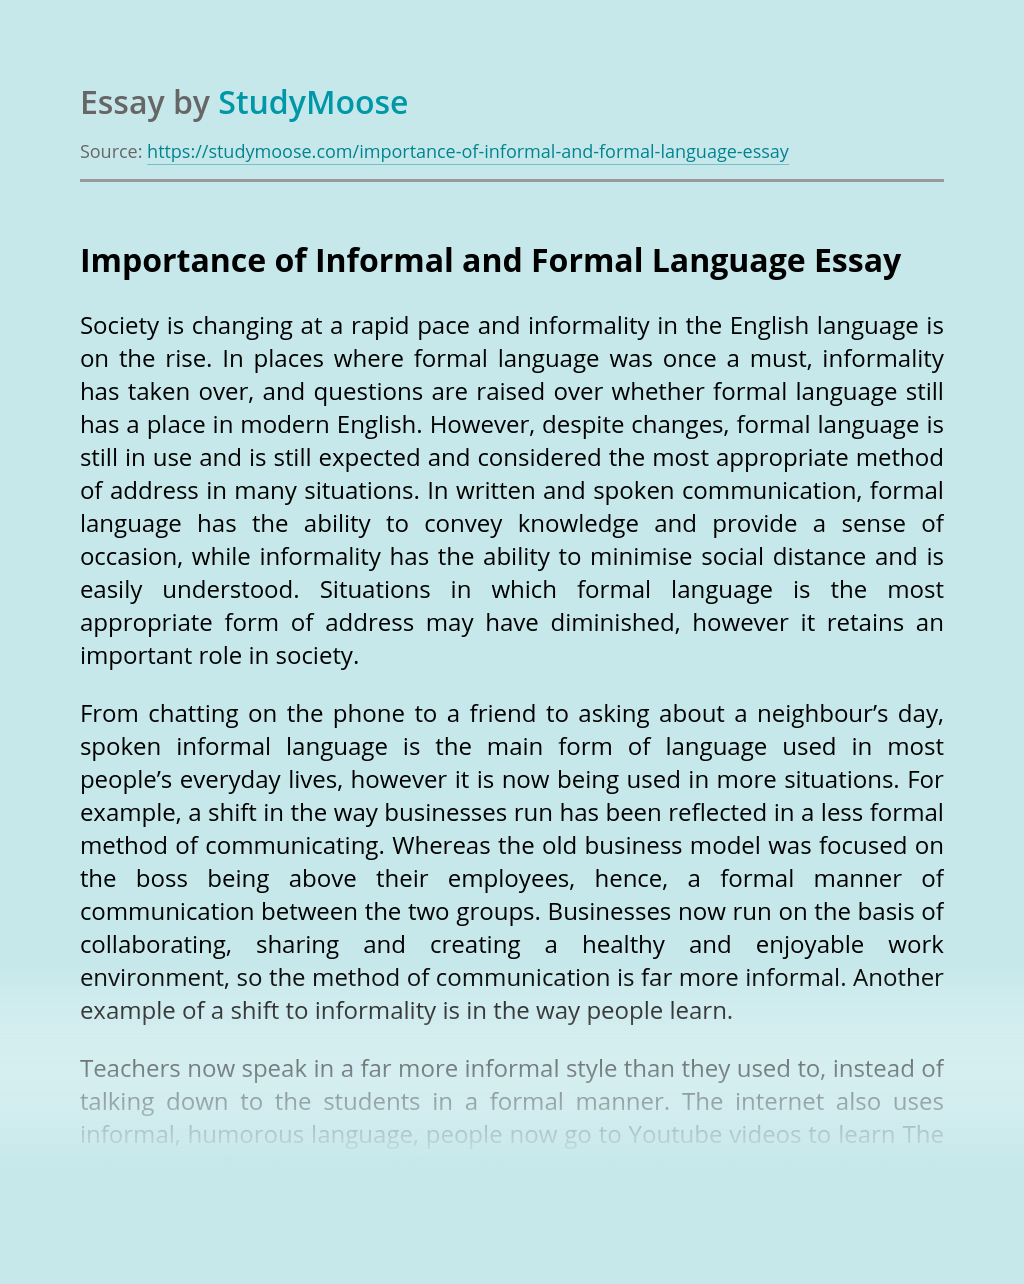 Importance of Informal and Formal Language